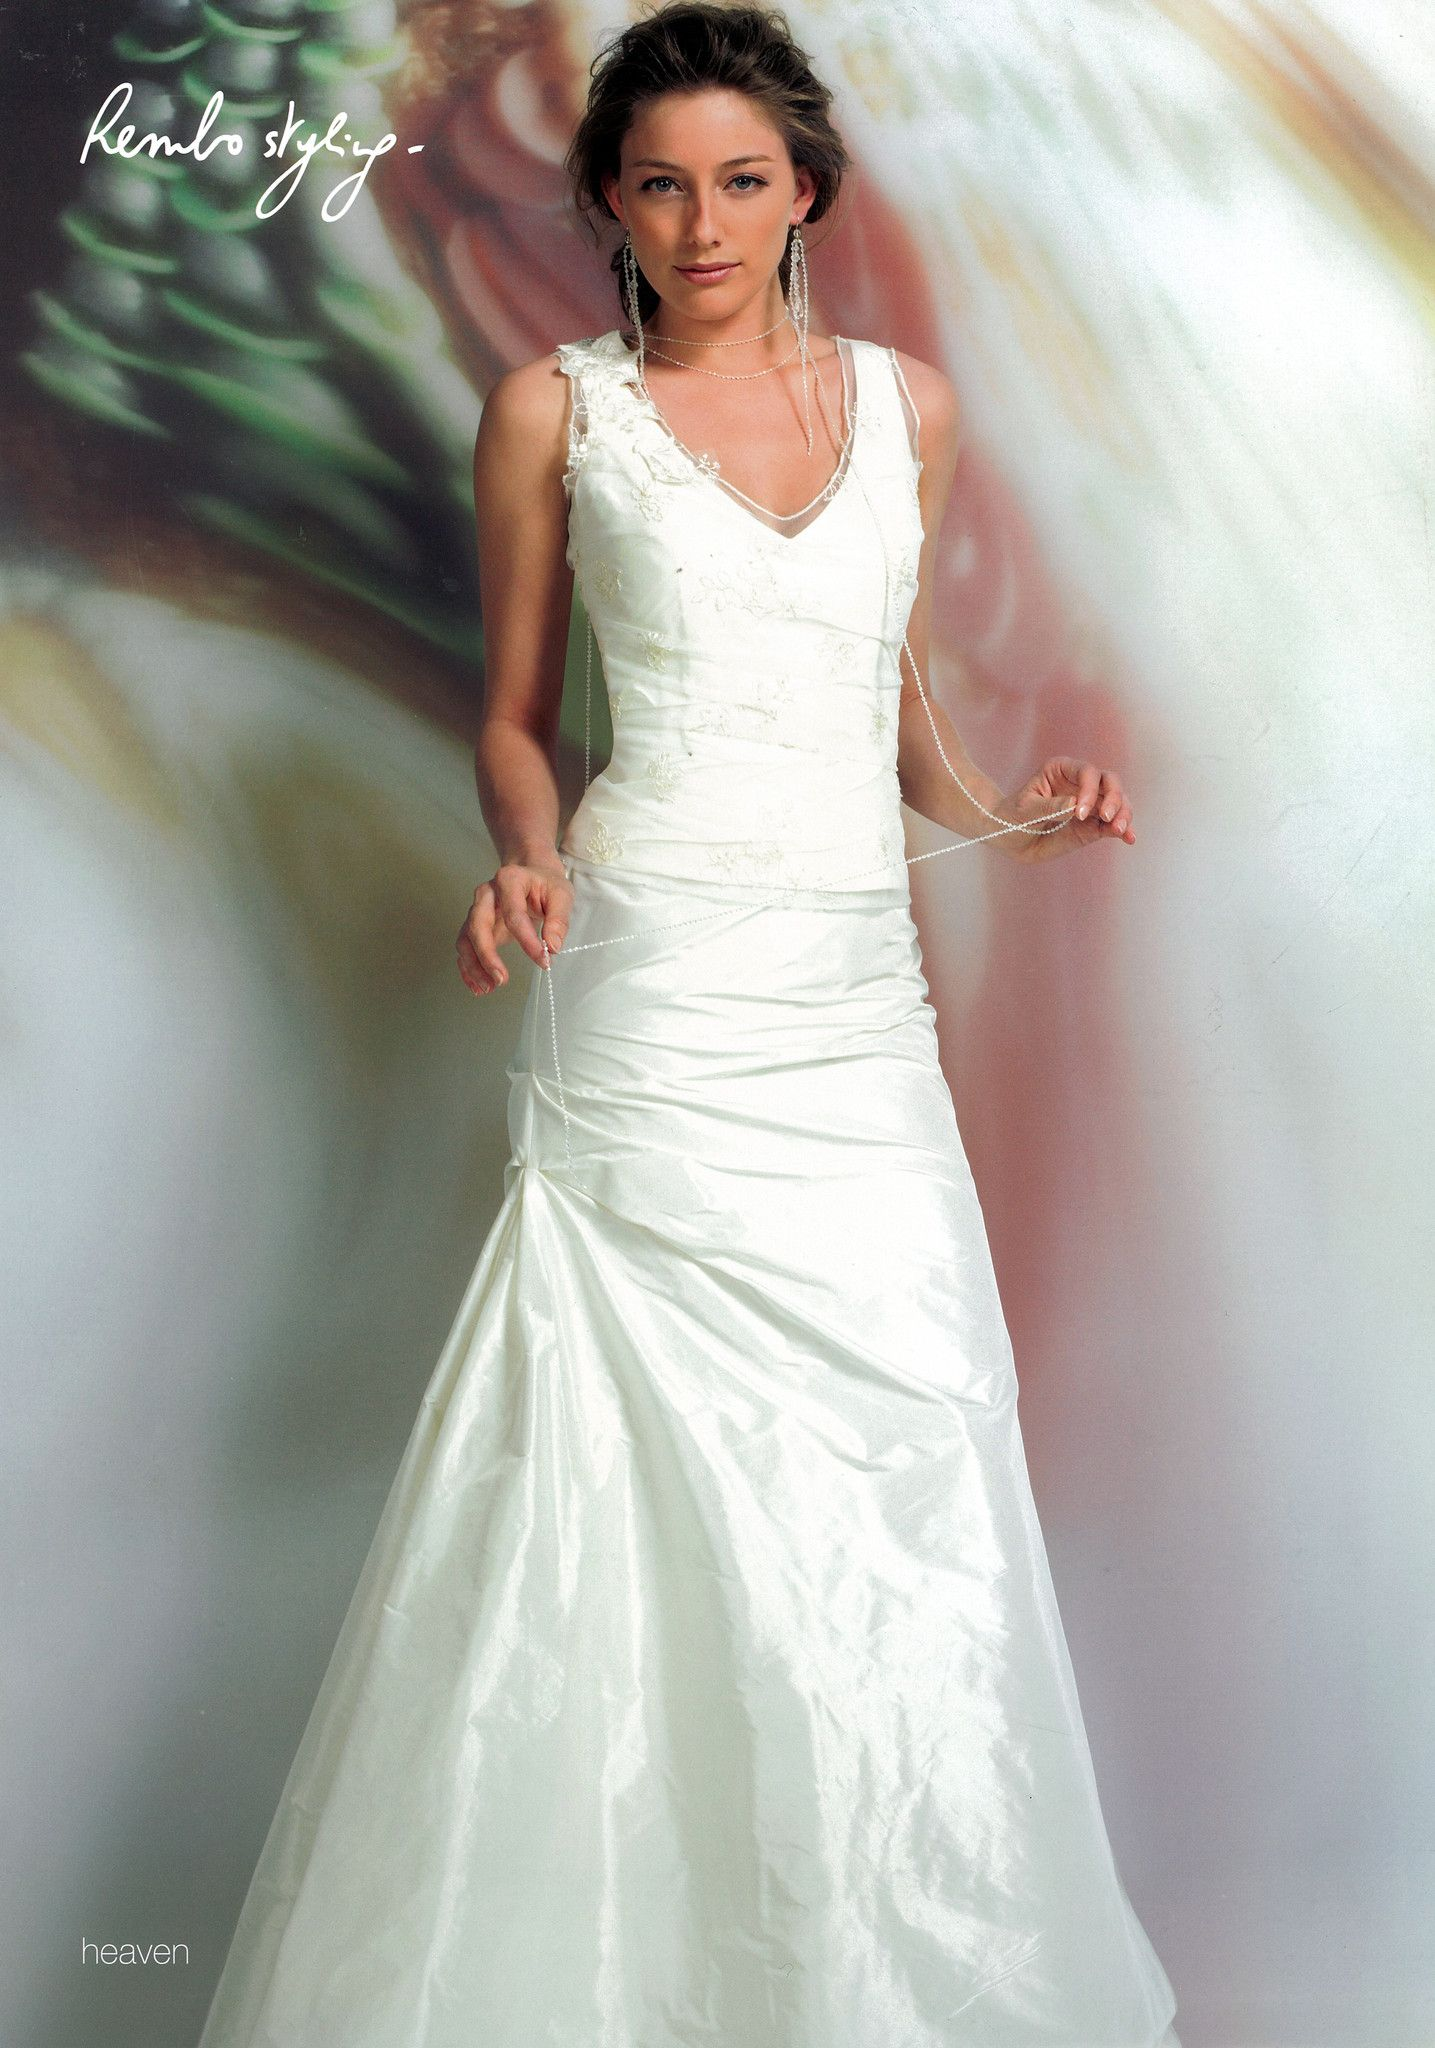 Cute rembo styling heaven uk wedding dress sample ivory lace bodice with straps and fit and